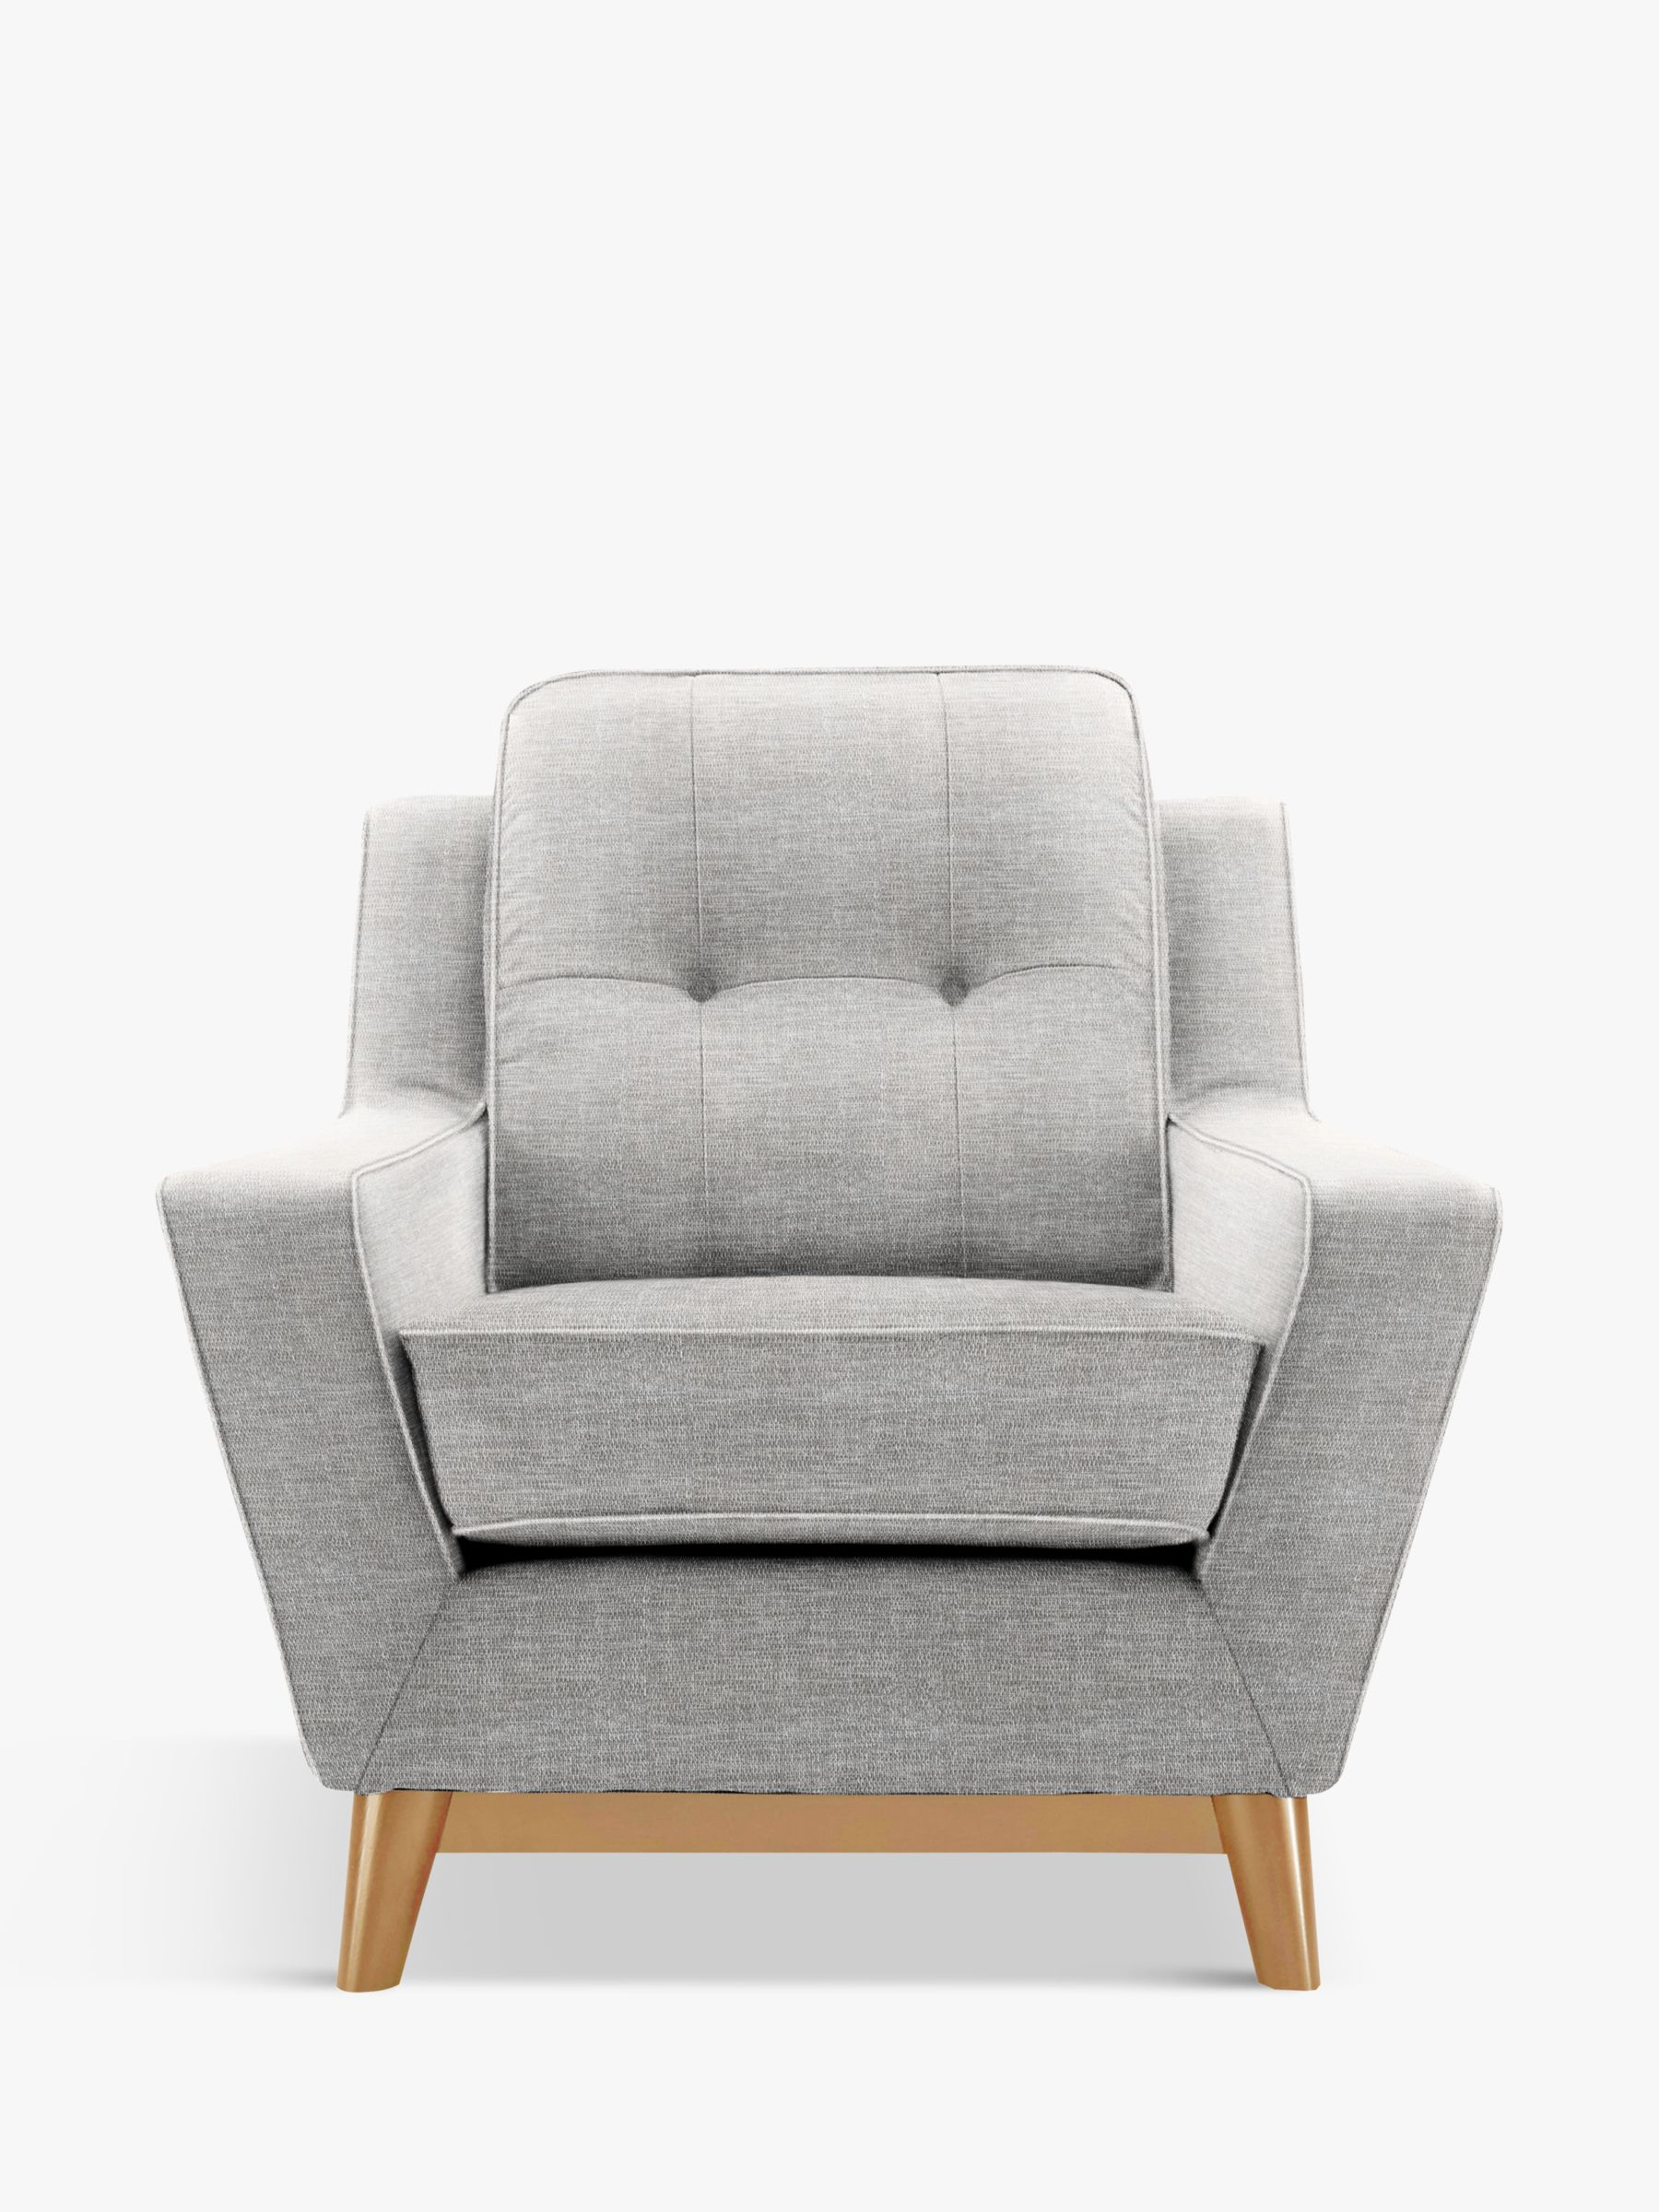 G Plan Vintage The Fifty Three Armchair, Marl Grey